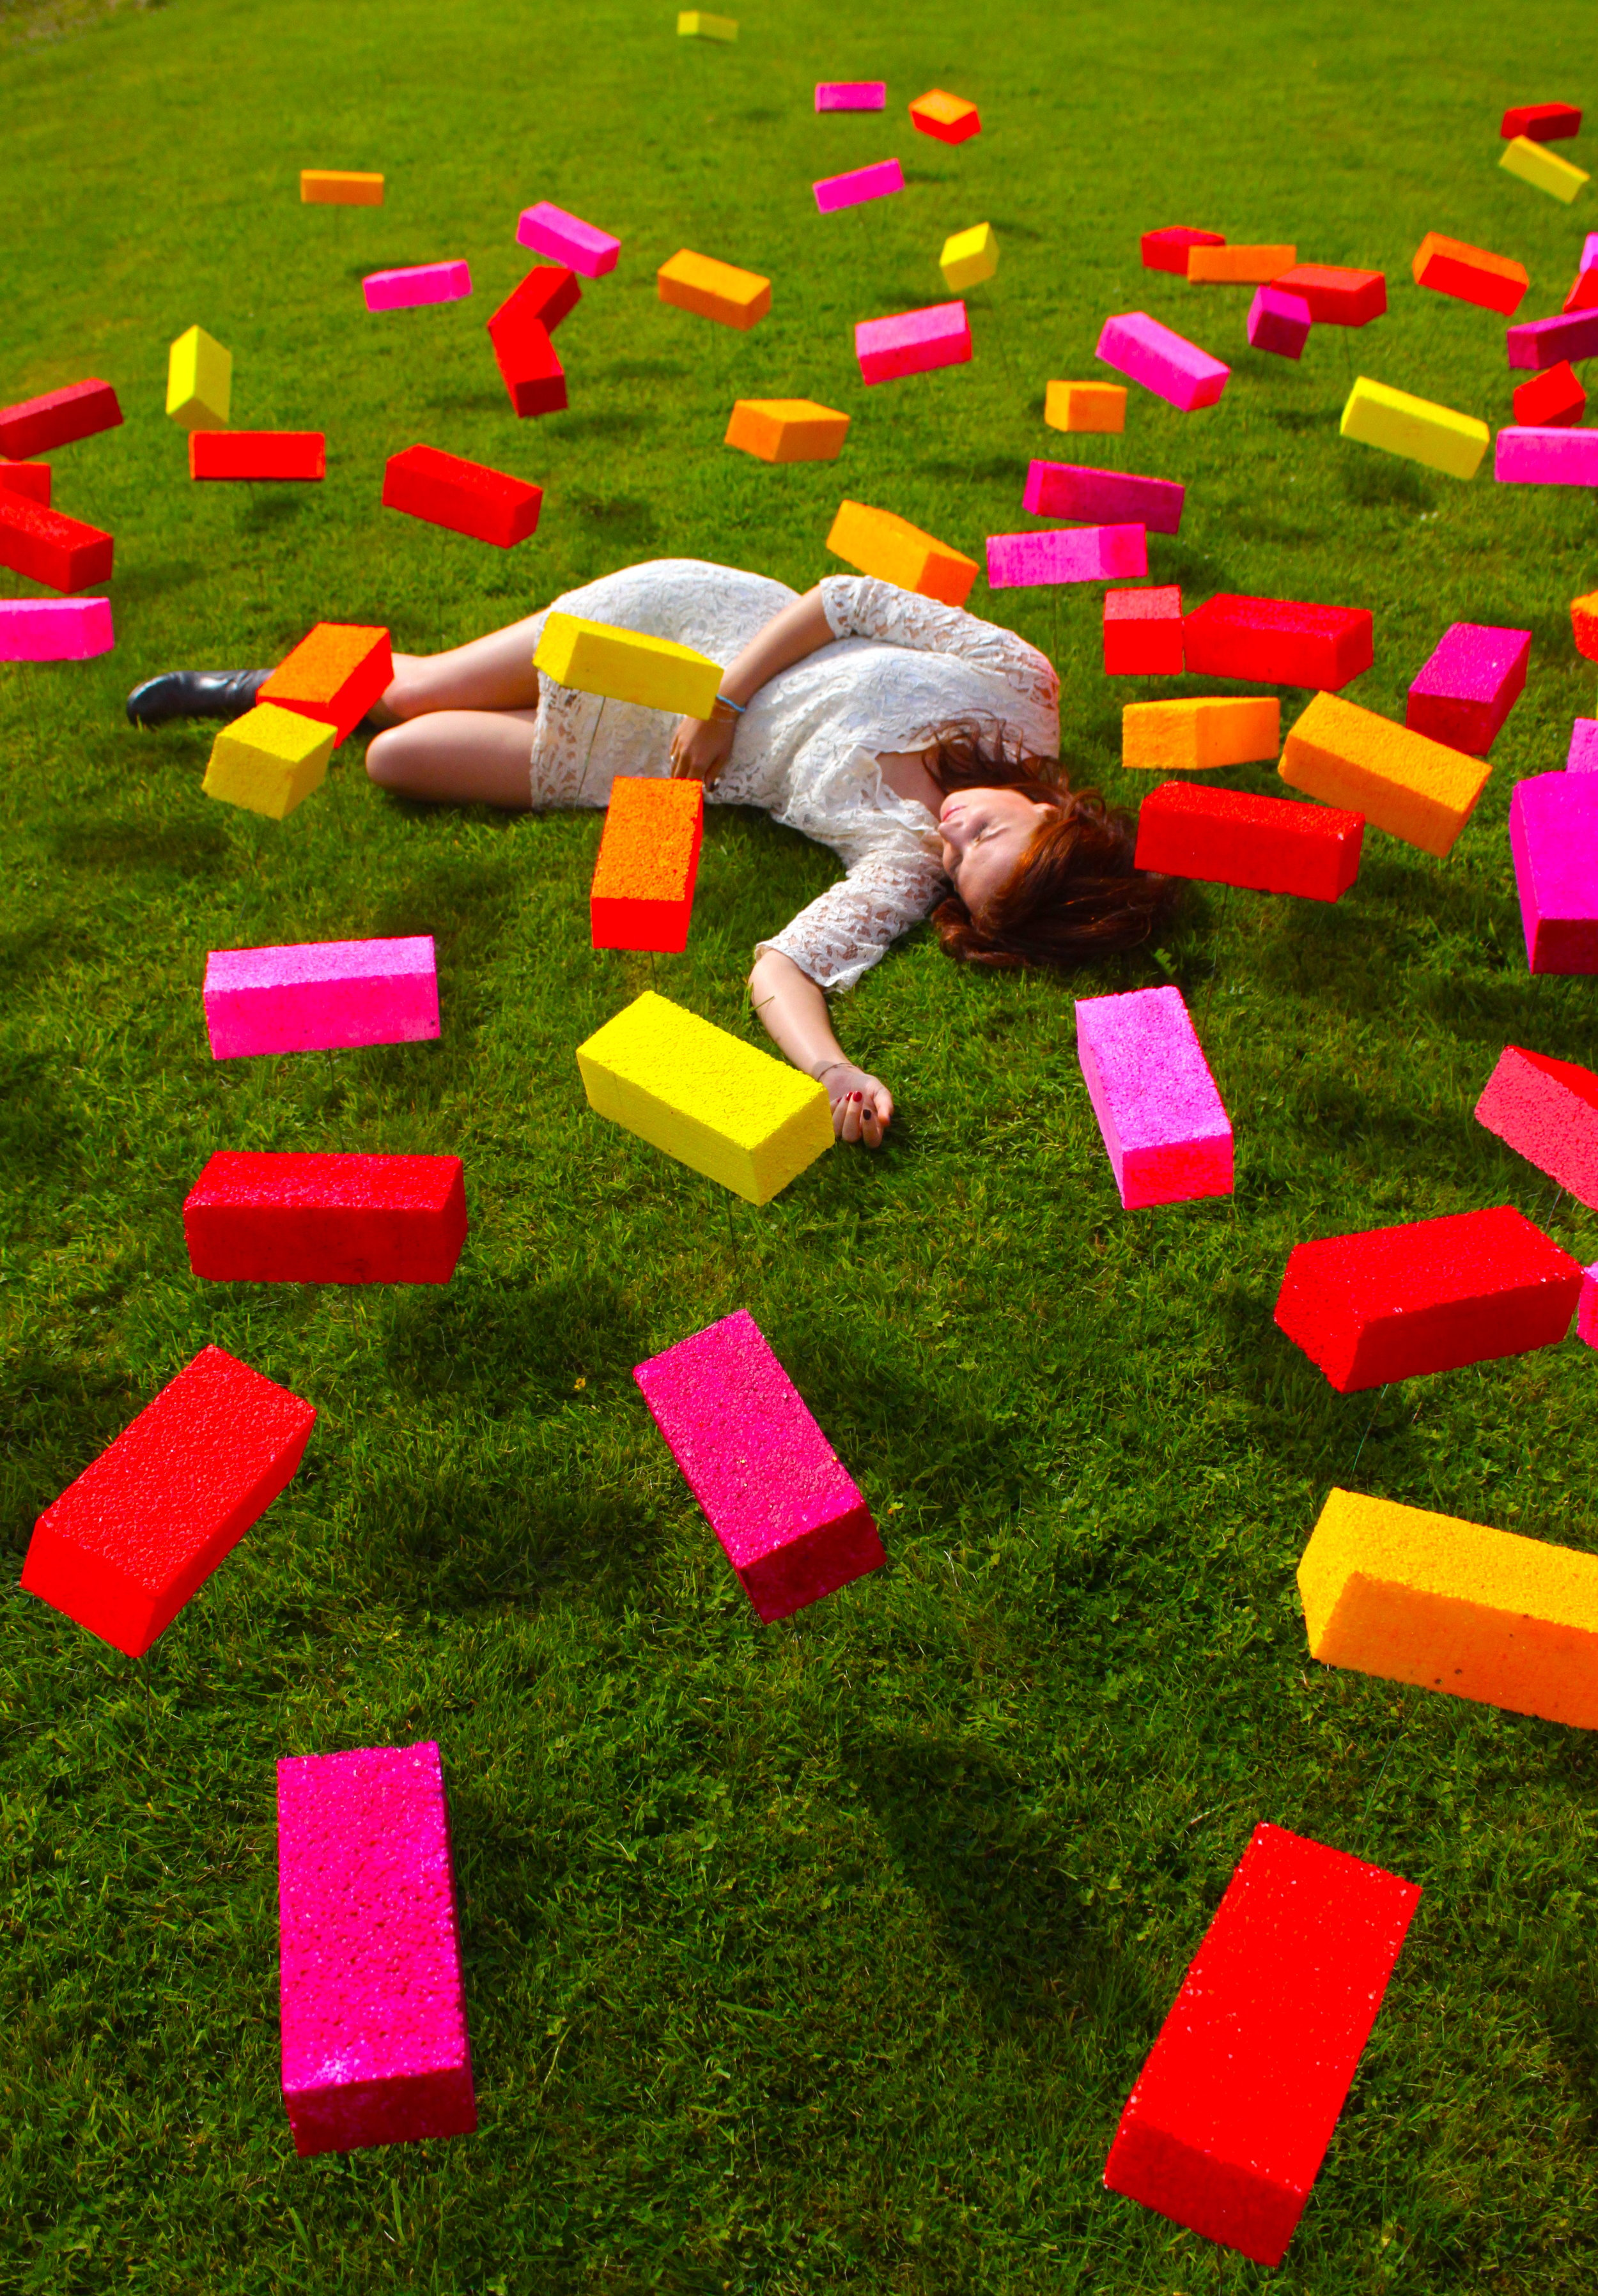 Ticker-Tape: Levitate - InstallationThe sculpture consisted of 150 levitating colourful bricks rising up above the border between England and Wales.From a far the bricks look like Ticker-Tape or confetti that has fallen, marking human presence.However, the bricks become tangible objects when viewed up-close, and by interacting with the environment (changing light, breeze) the piece creates tension within the overall landscape; referencing boundaries that are felt rather than seen.Cabalva Farm, Hereford Art Week.7.9.13-15.9.13.